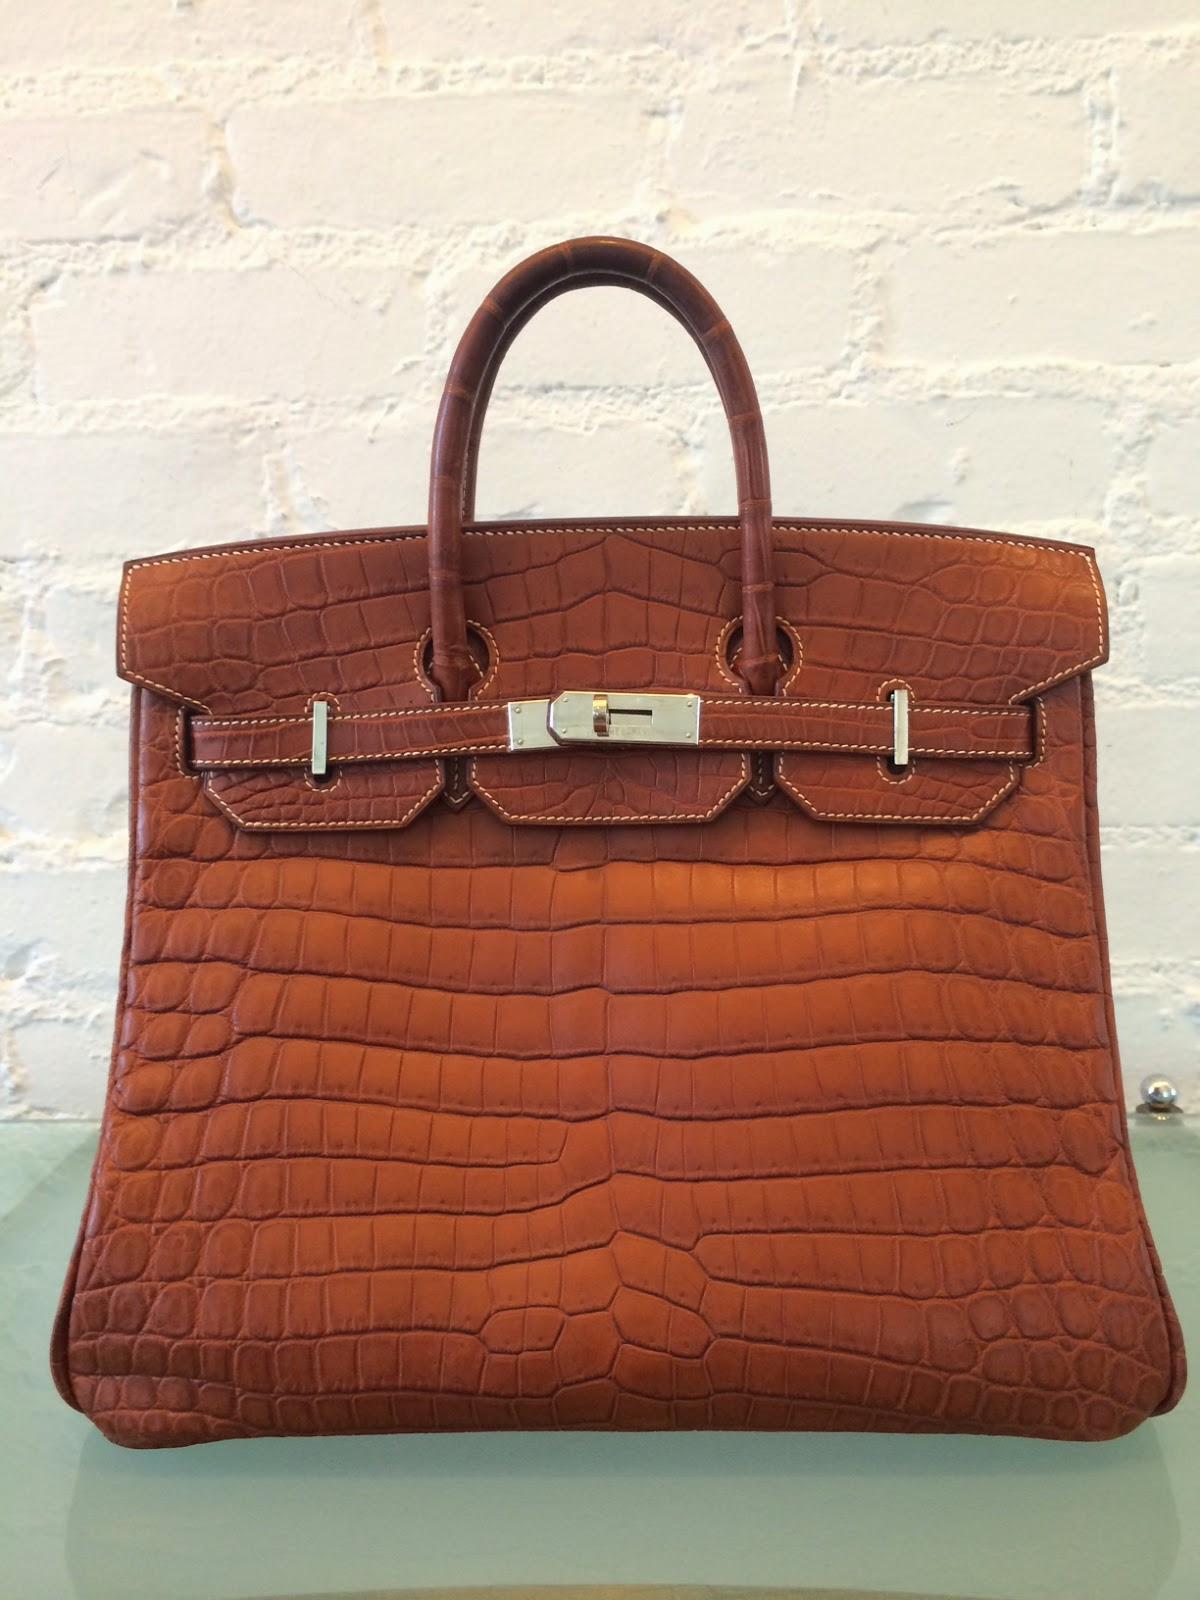 f940e960326 Hermes Birkin HAC 32cm croc matte in caramel with palladium hardware, 2000.  SOLD